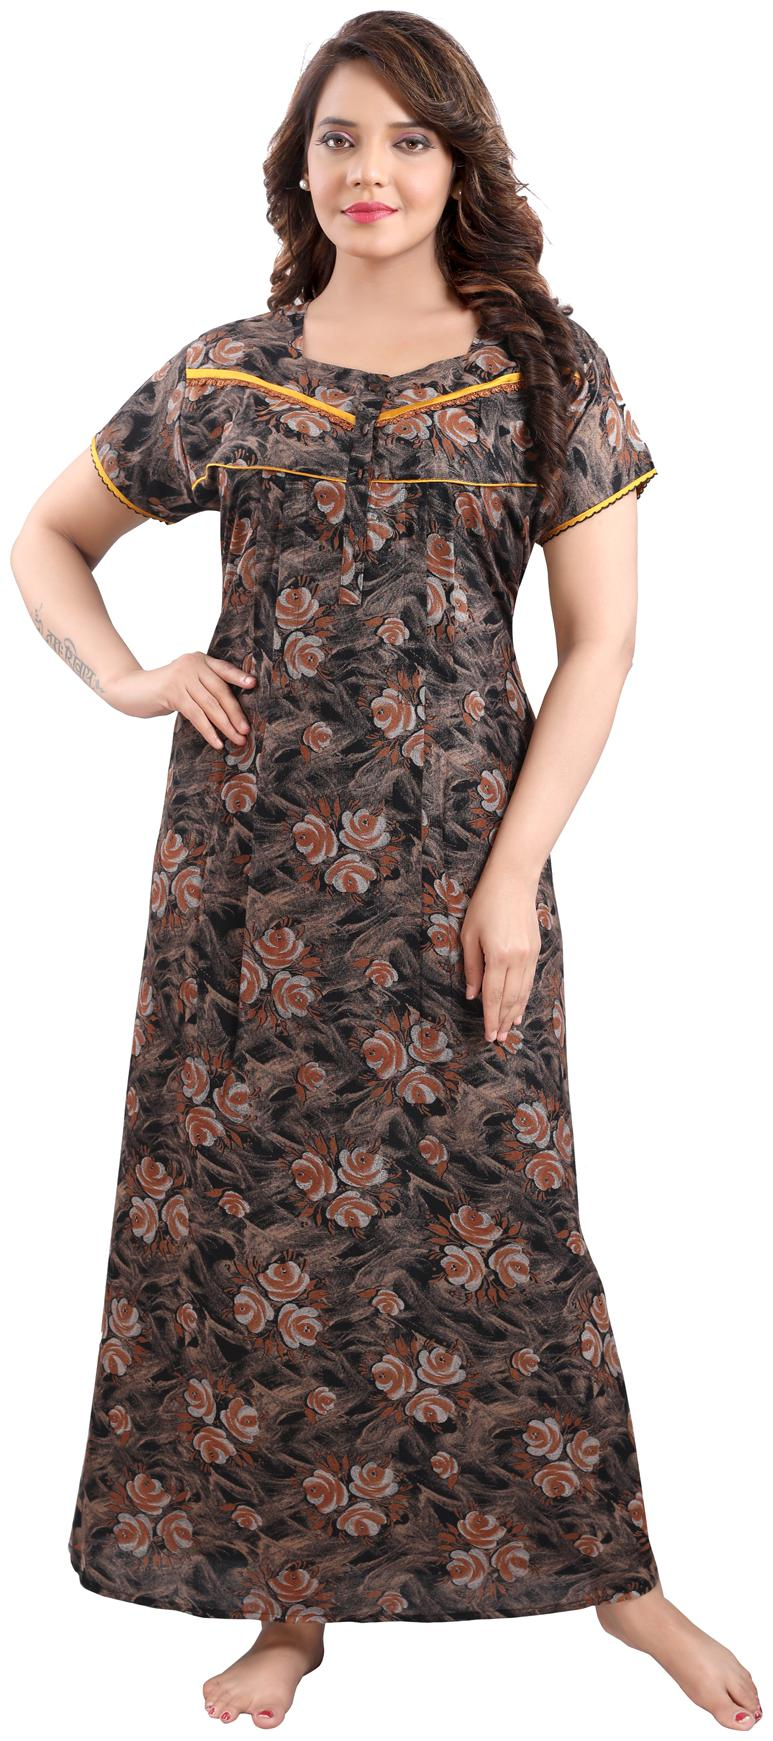 https://assetscdn1.paytm.com/images/catalog/product/A/AP/APPBE-YOU-COTTOBE-Y231313D07CD91/1603977089644_2..jpg